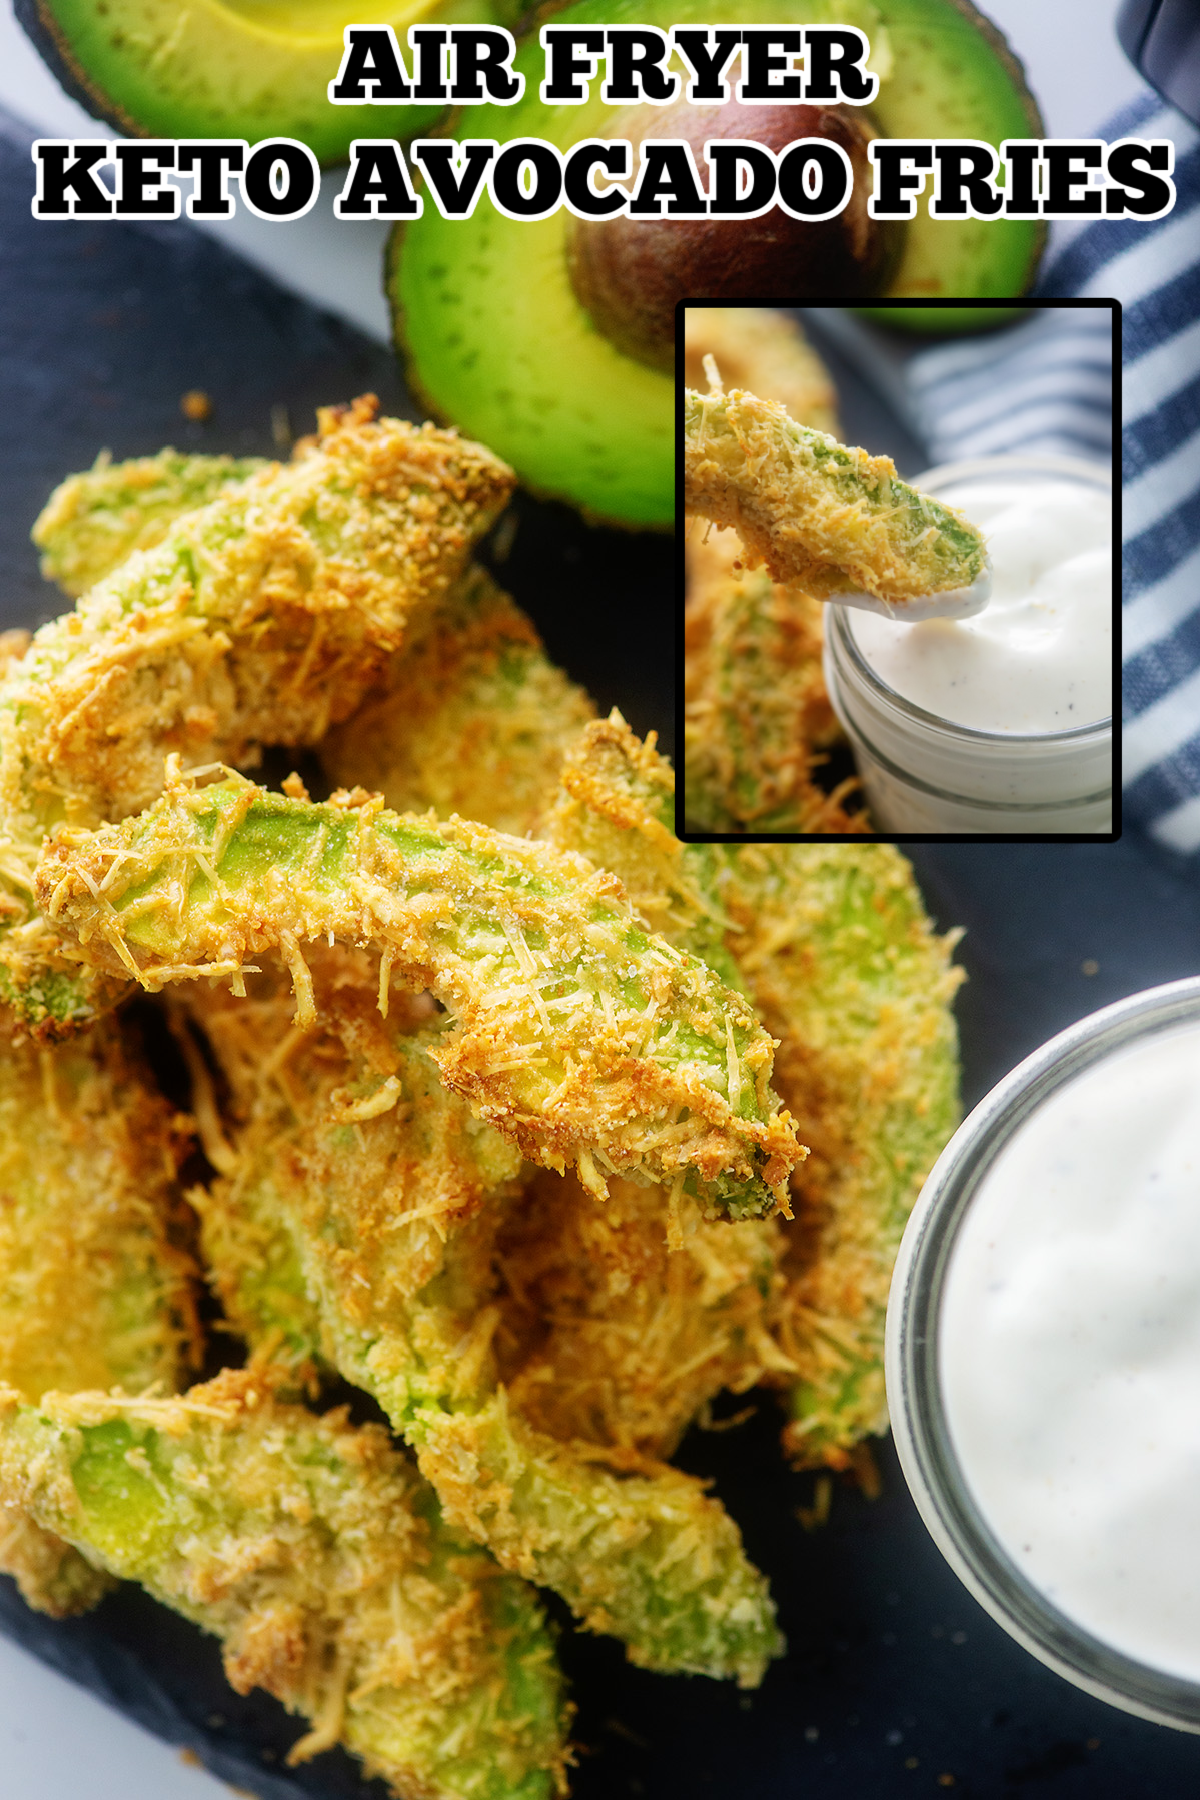 These air fried avocado fries are nice and crispy! #keto #avocado #airfryer